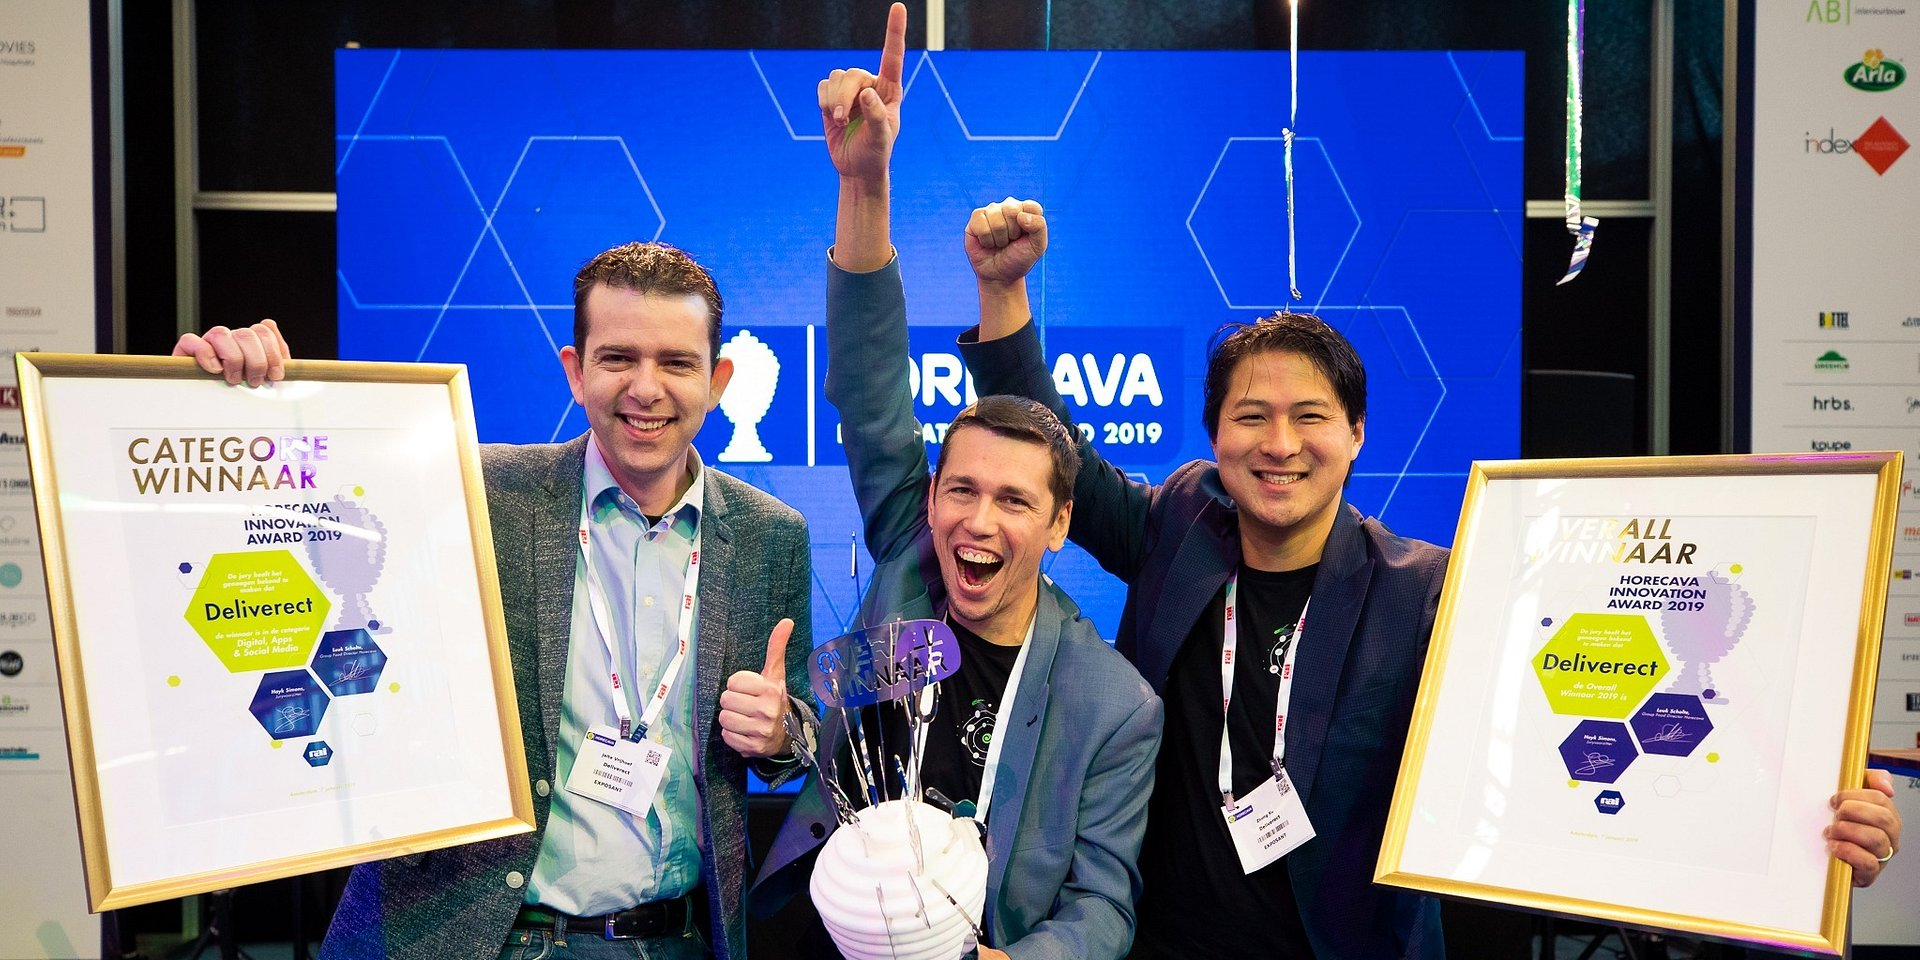 Deliverect wins the 2019 Horecava Innovation Award